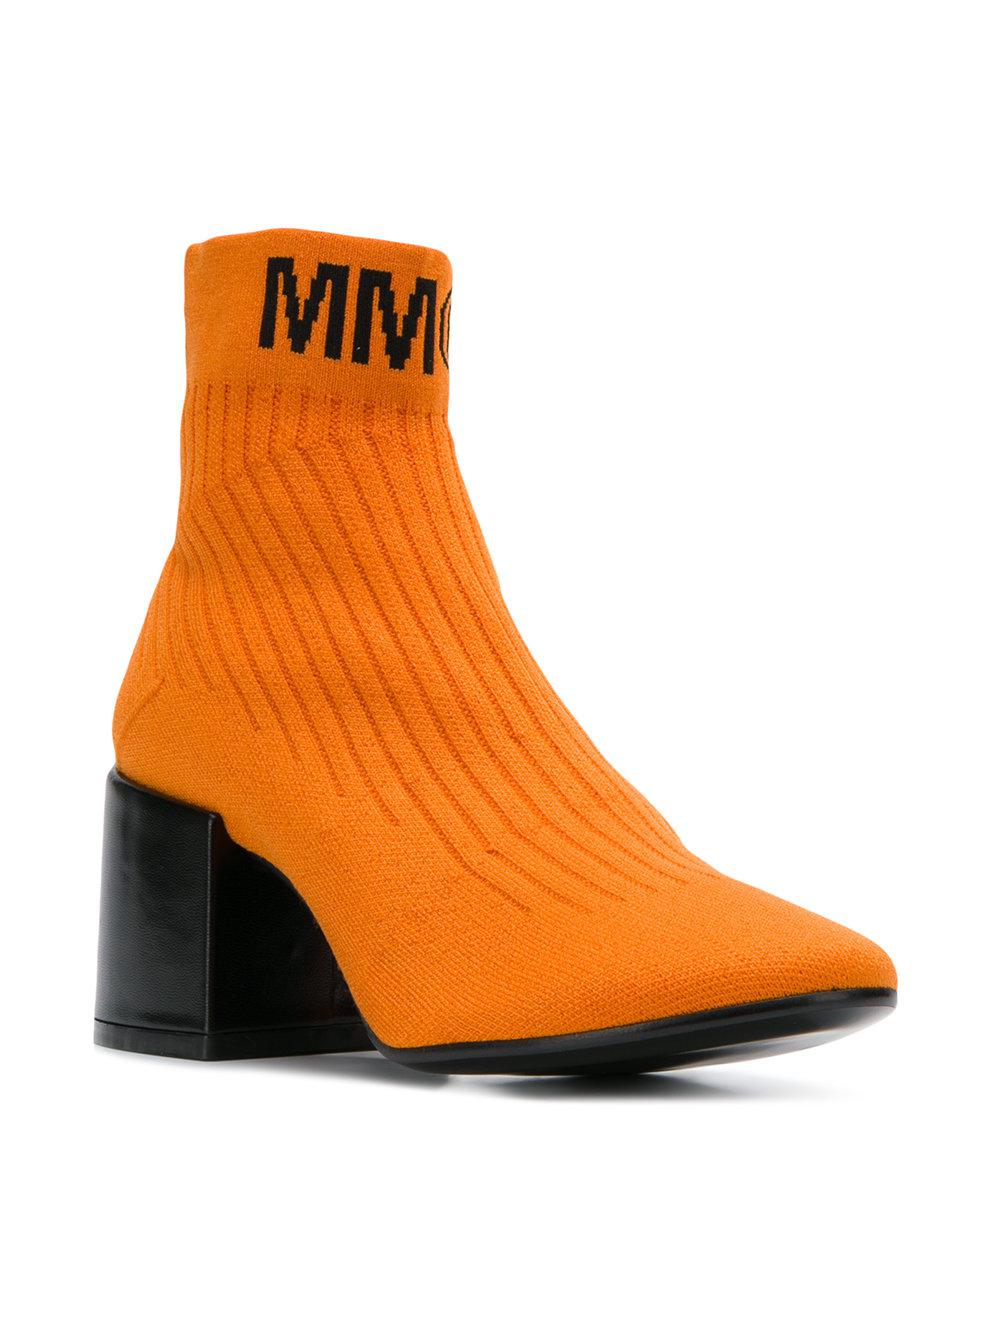 Flare sock boots - Yellow & Orange Maison Martin Margiela For Sale Cheap Price Free Shipping Outlet Store Outlet Deals Outlet For Nice 9jDJD